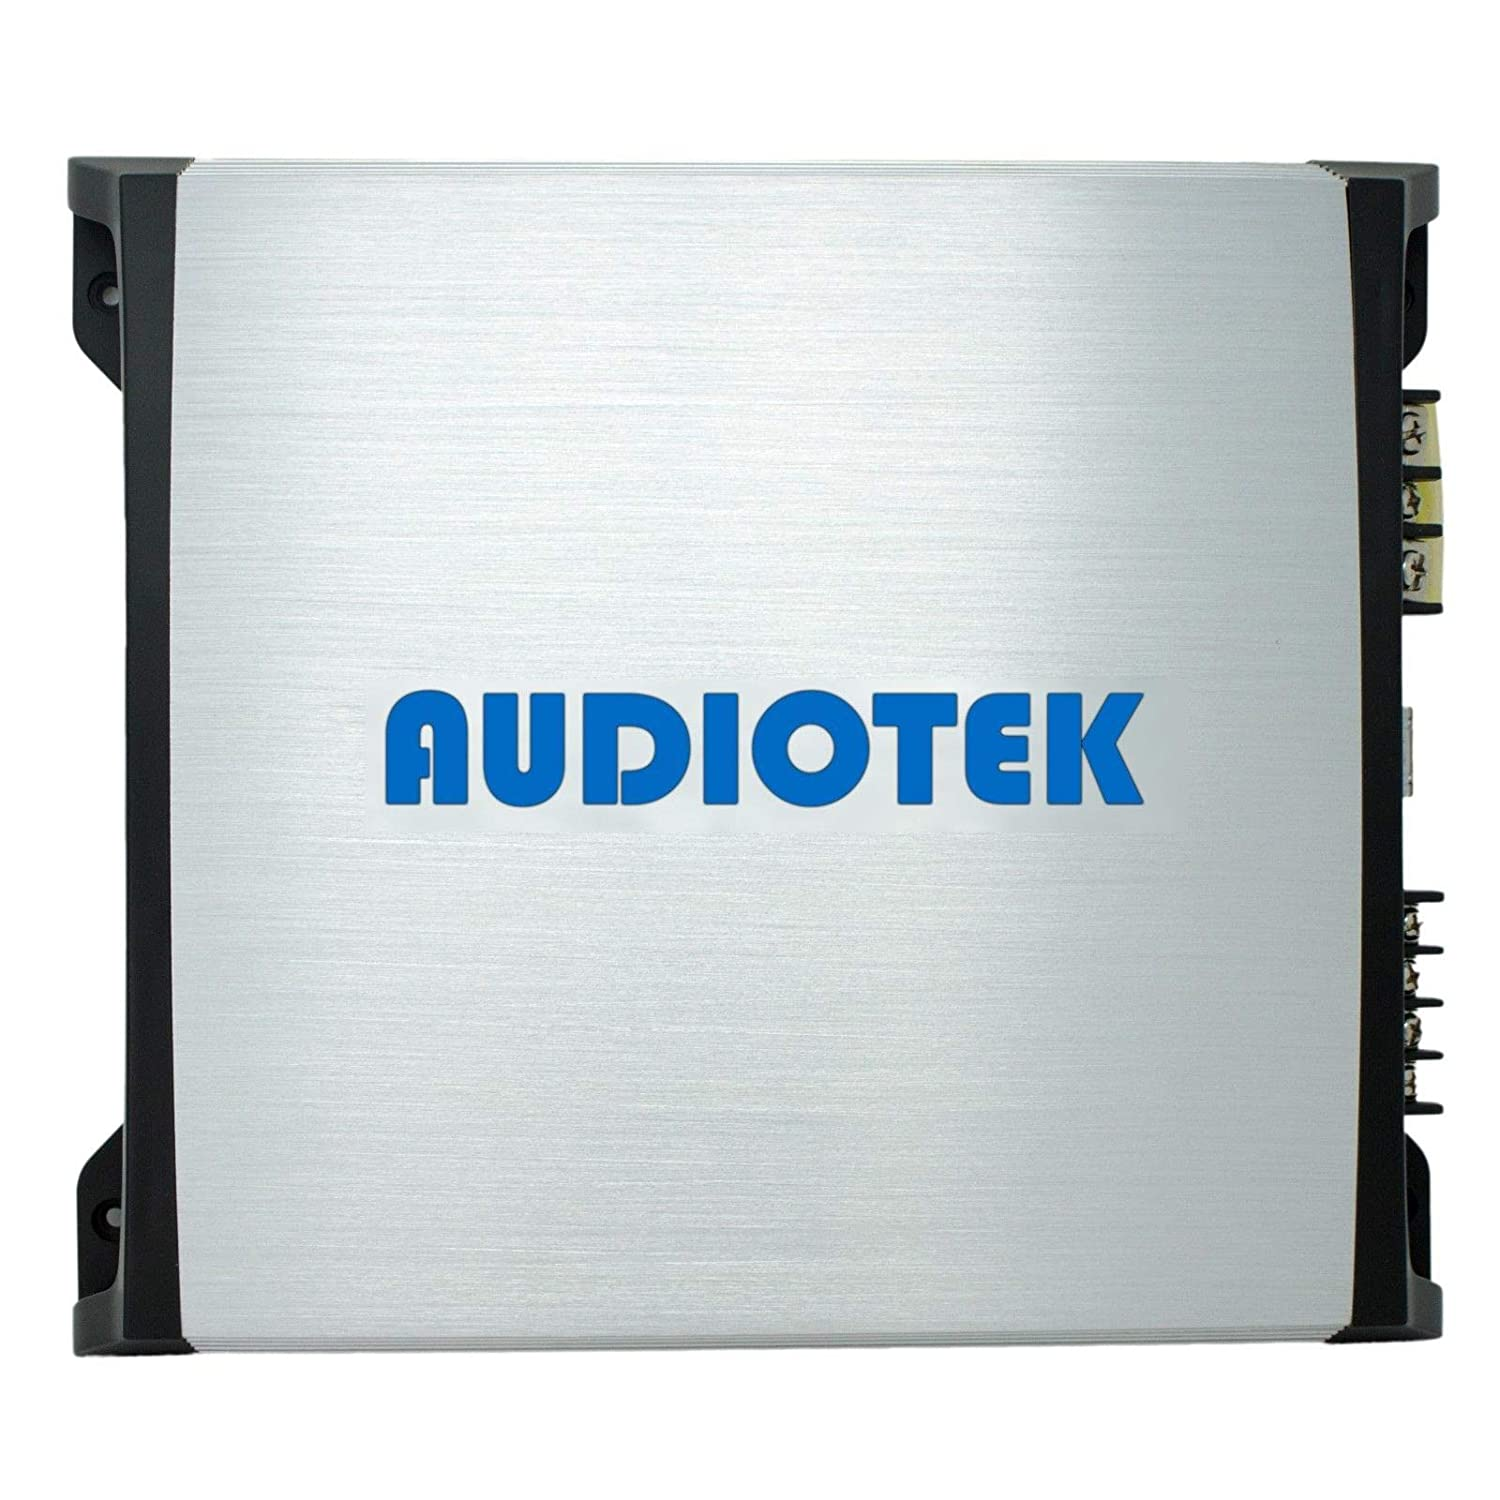 Audiotek AT920S 2 Channel Class A//B 2 Ohm Stable 2000W Car Audio Stereo Amplifier w//LED Indicator PK1LCW399